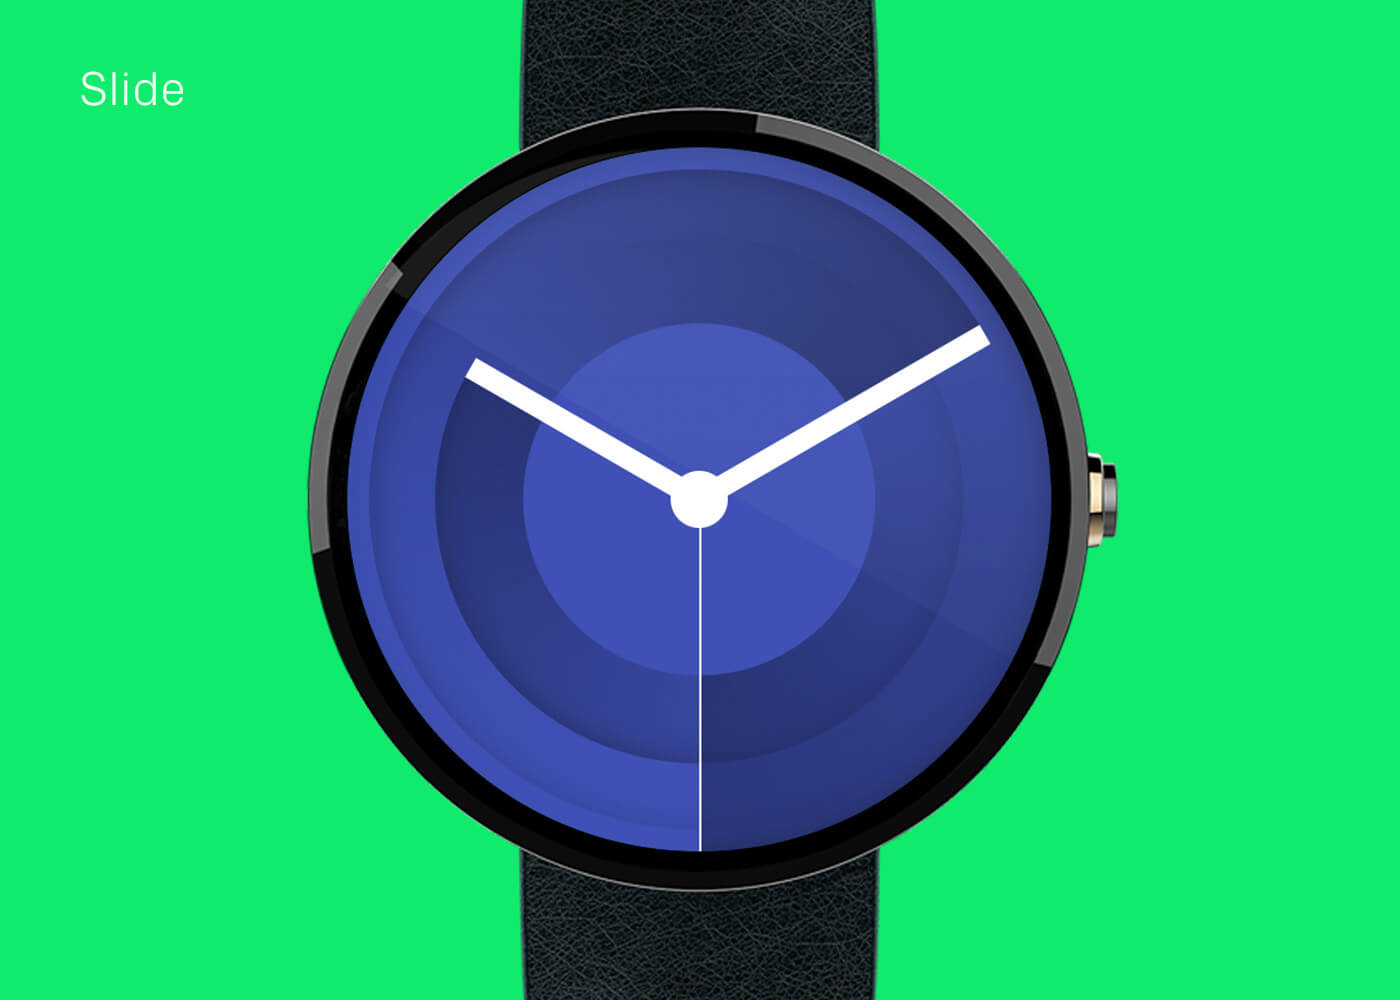 ustwo_watch_face_slide